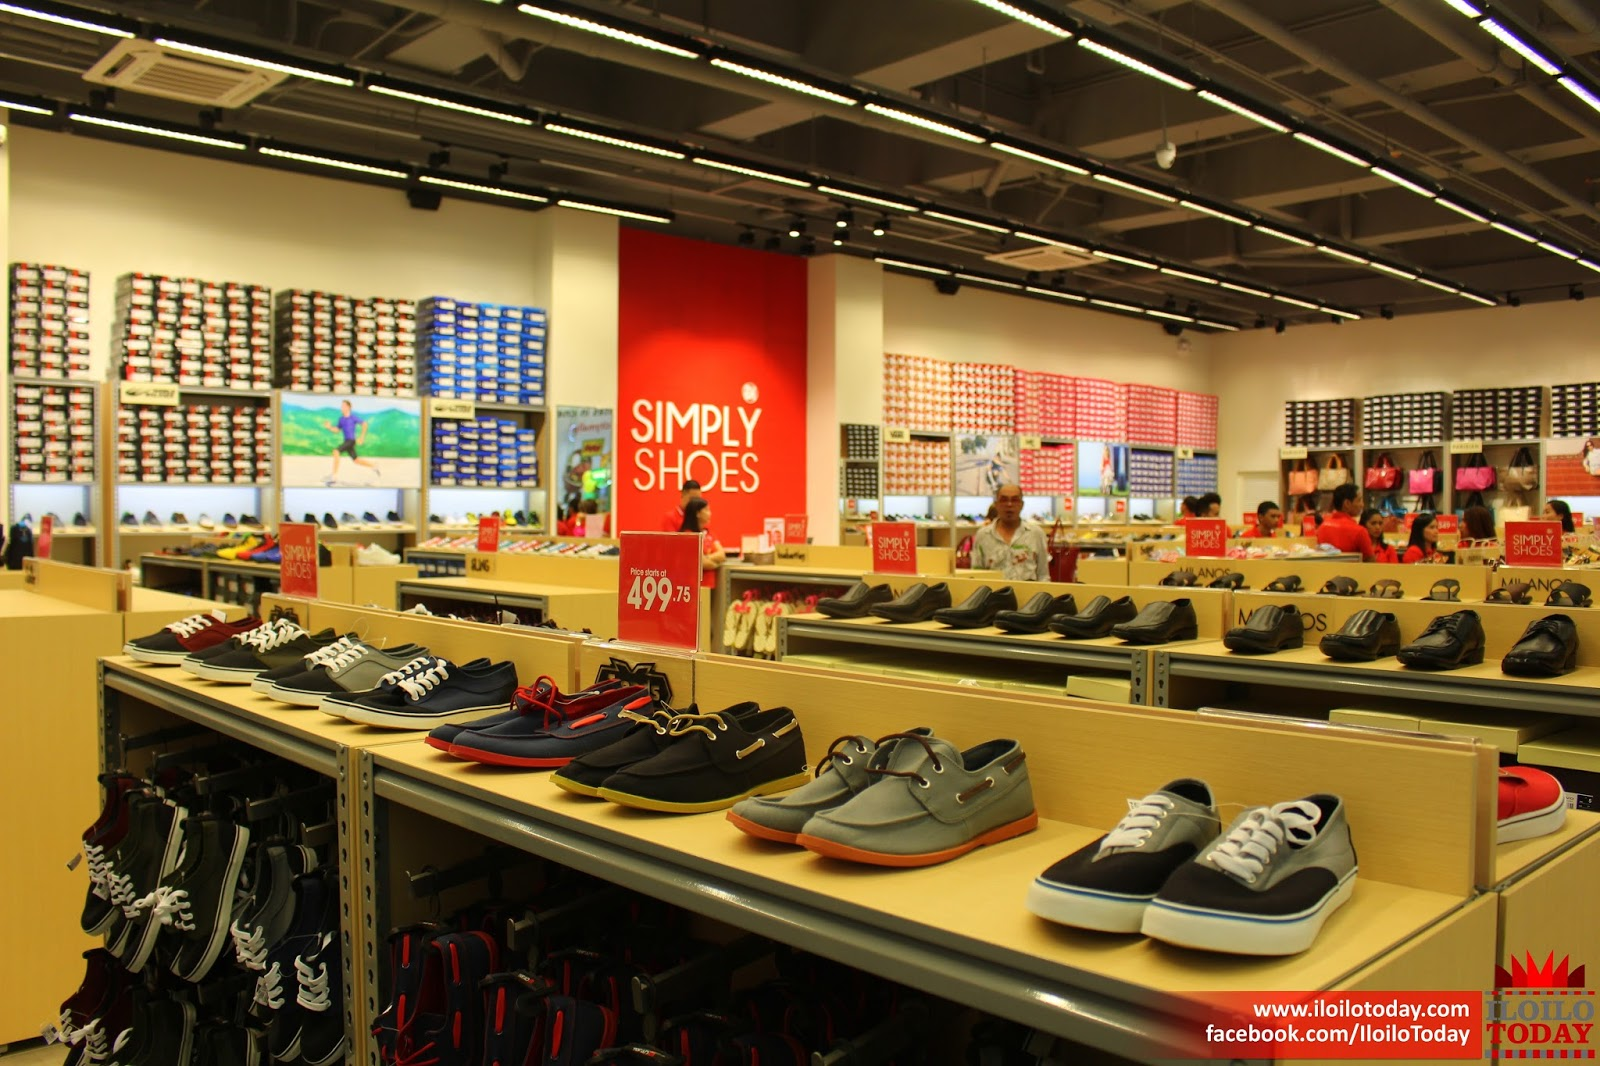 efe8606c5fb Buy 2 OFF ANY vans shoes retailers CASE AND GET 70% OFF!